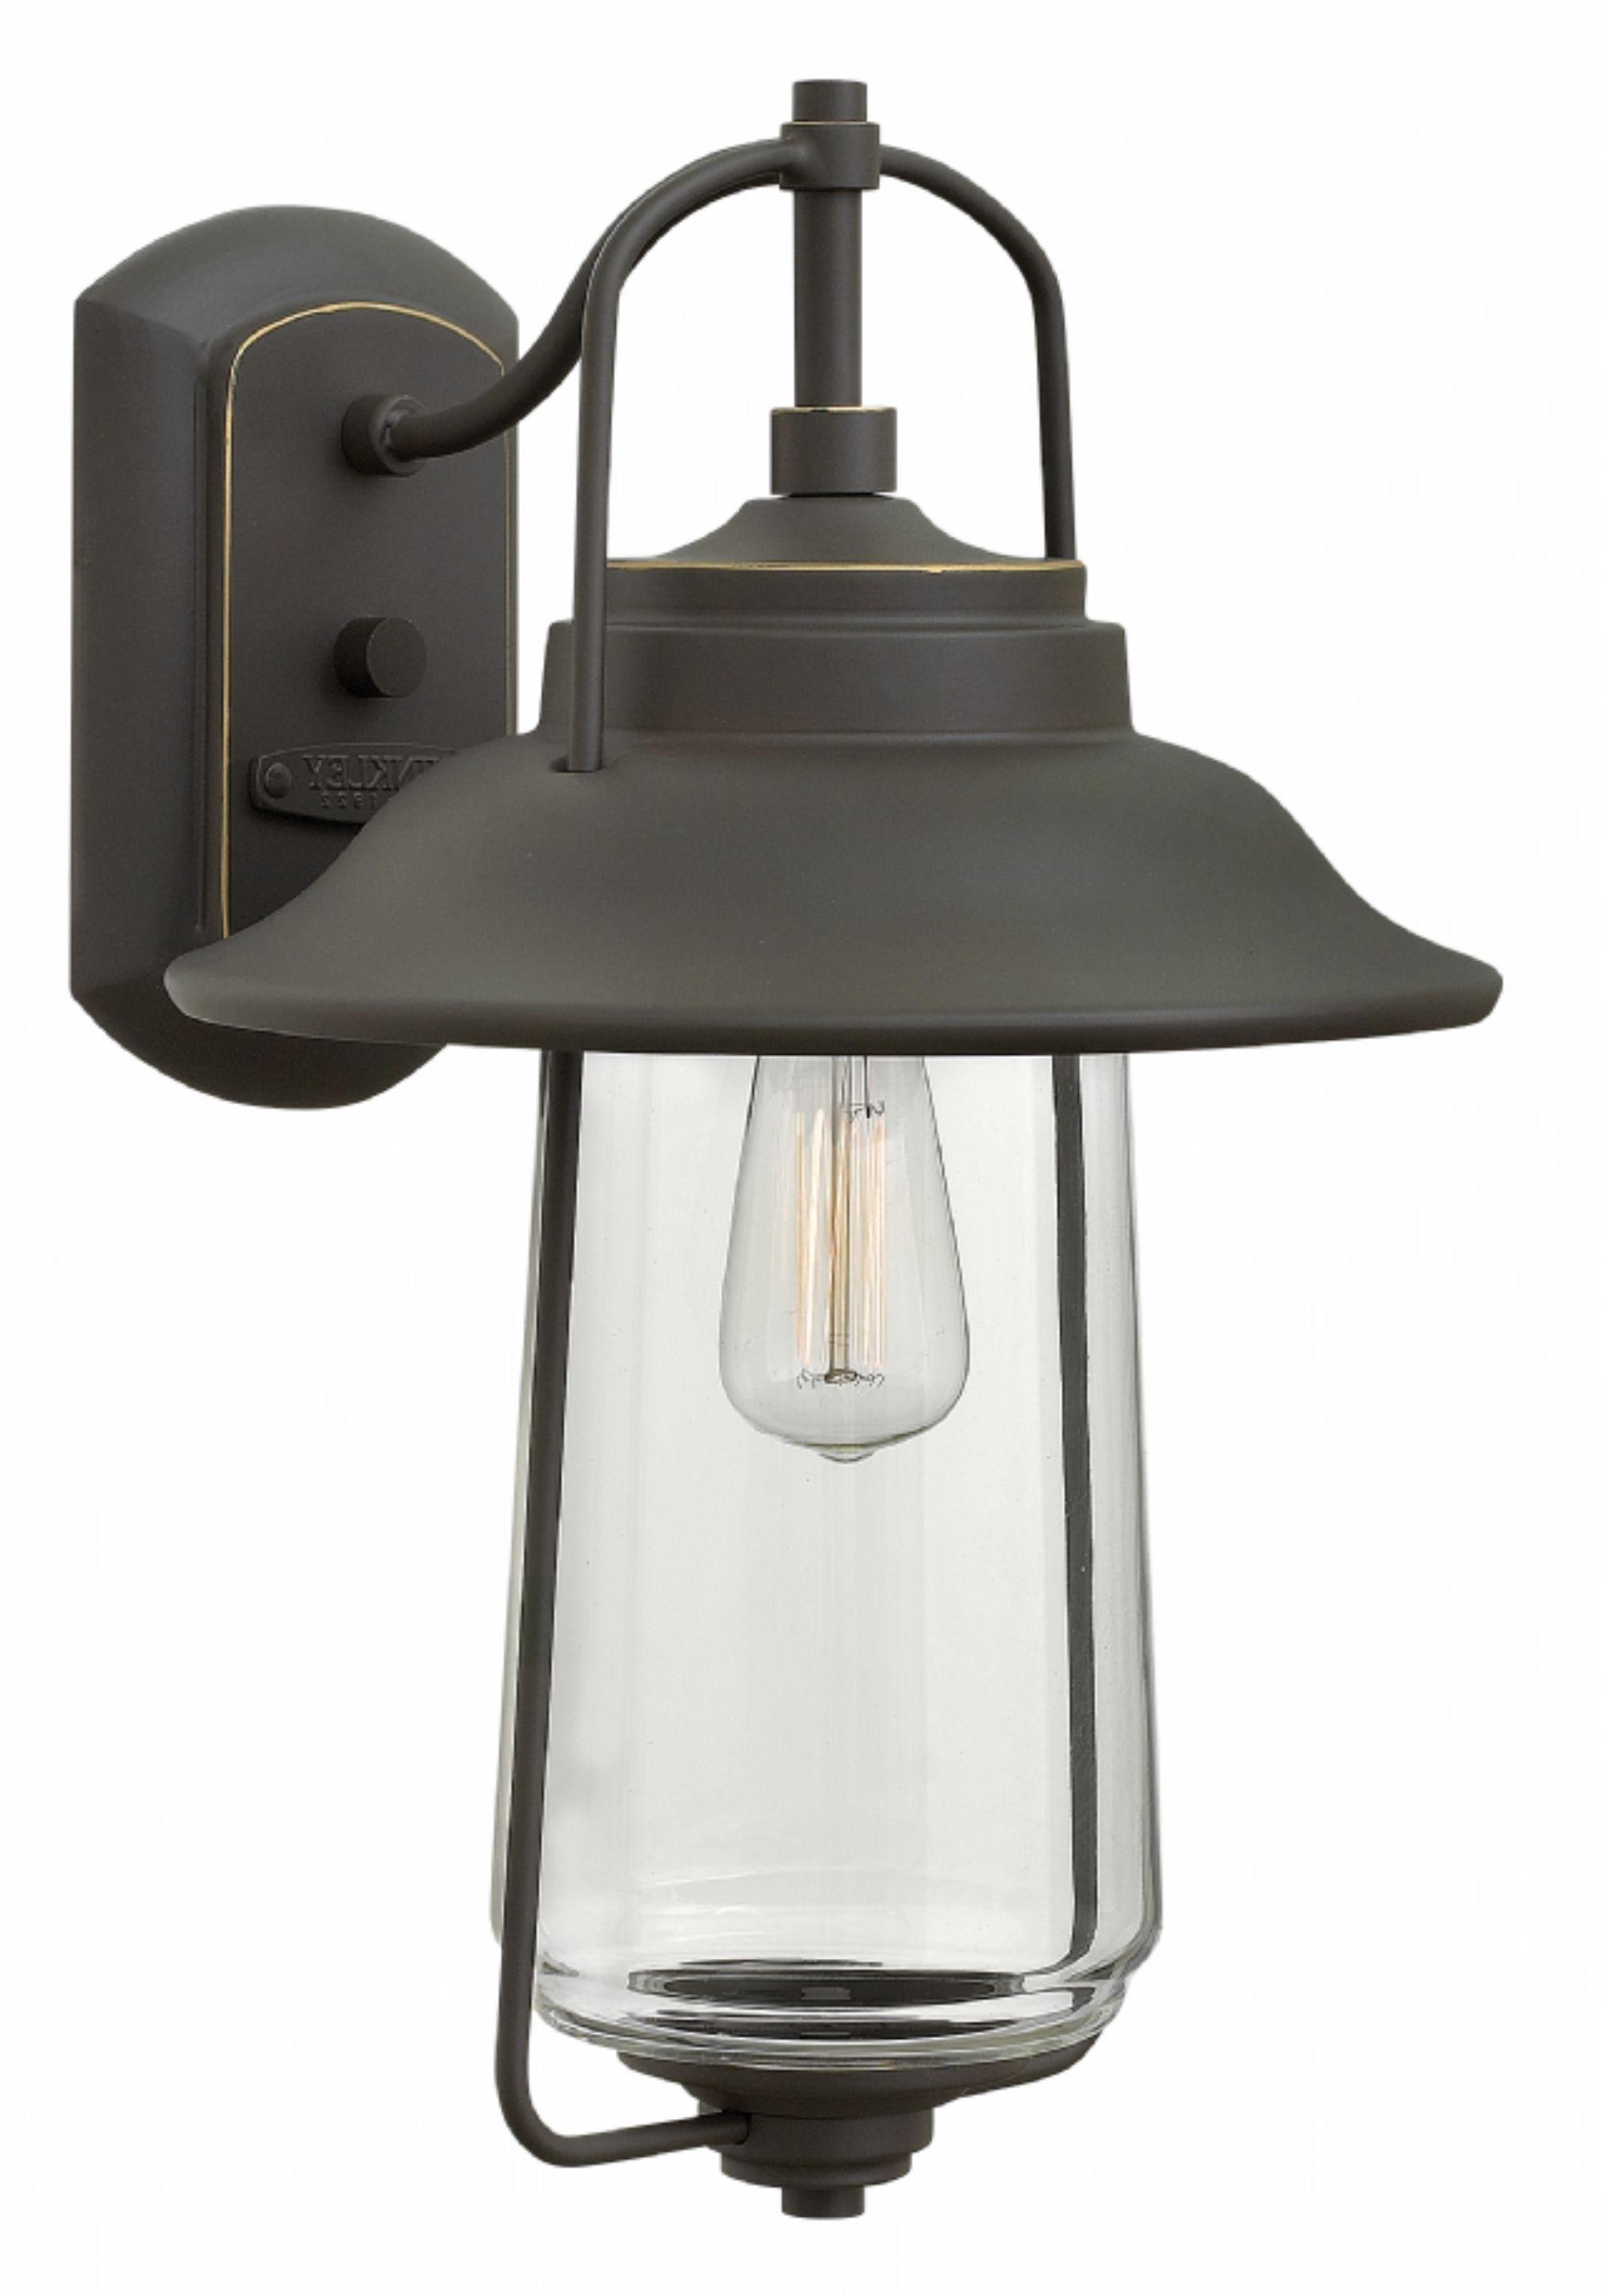 Oil Rubbed Bronze Belden Place > Exterior Wall Mount In Most Recent Hanging Porch Hinkley Lighting (View 14 of 20)